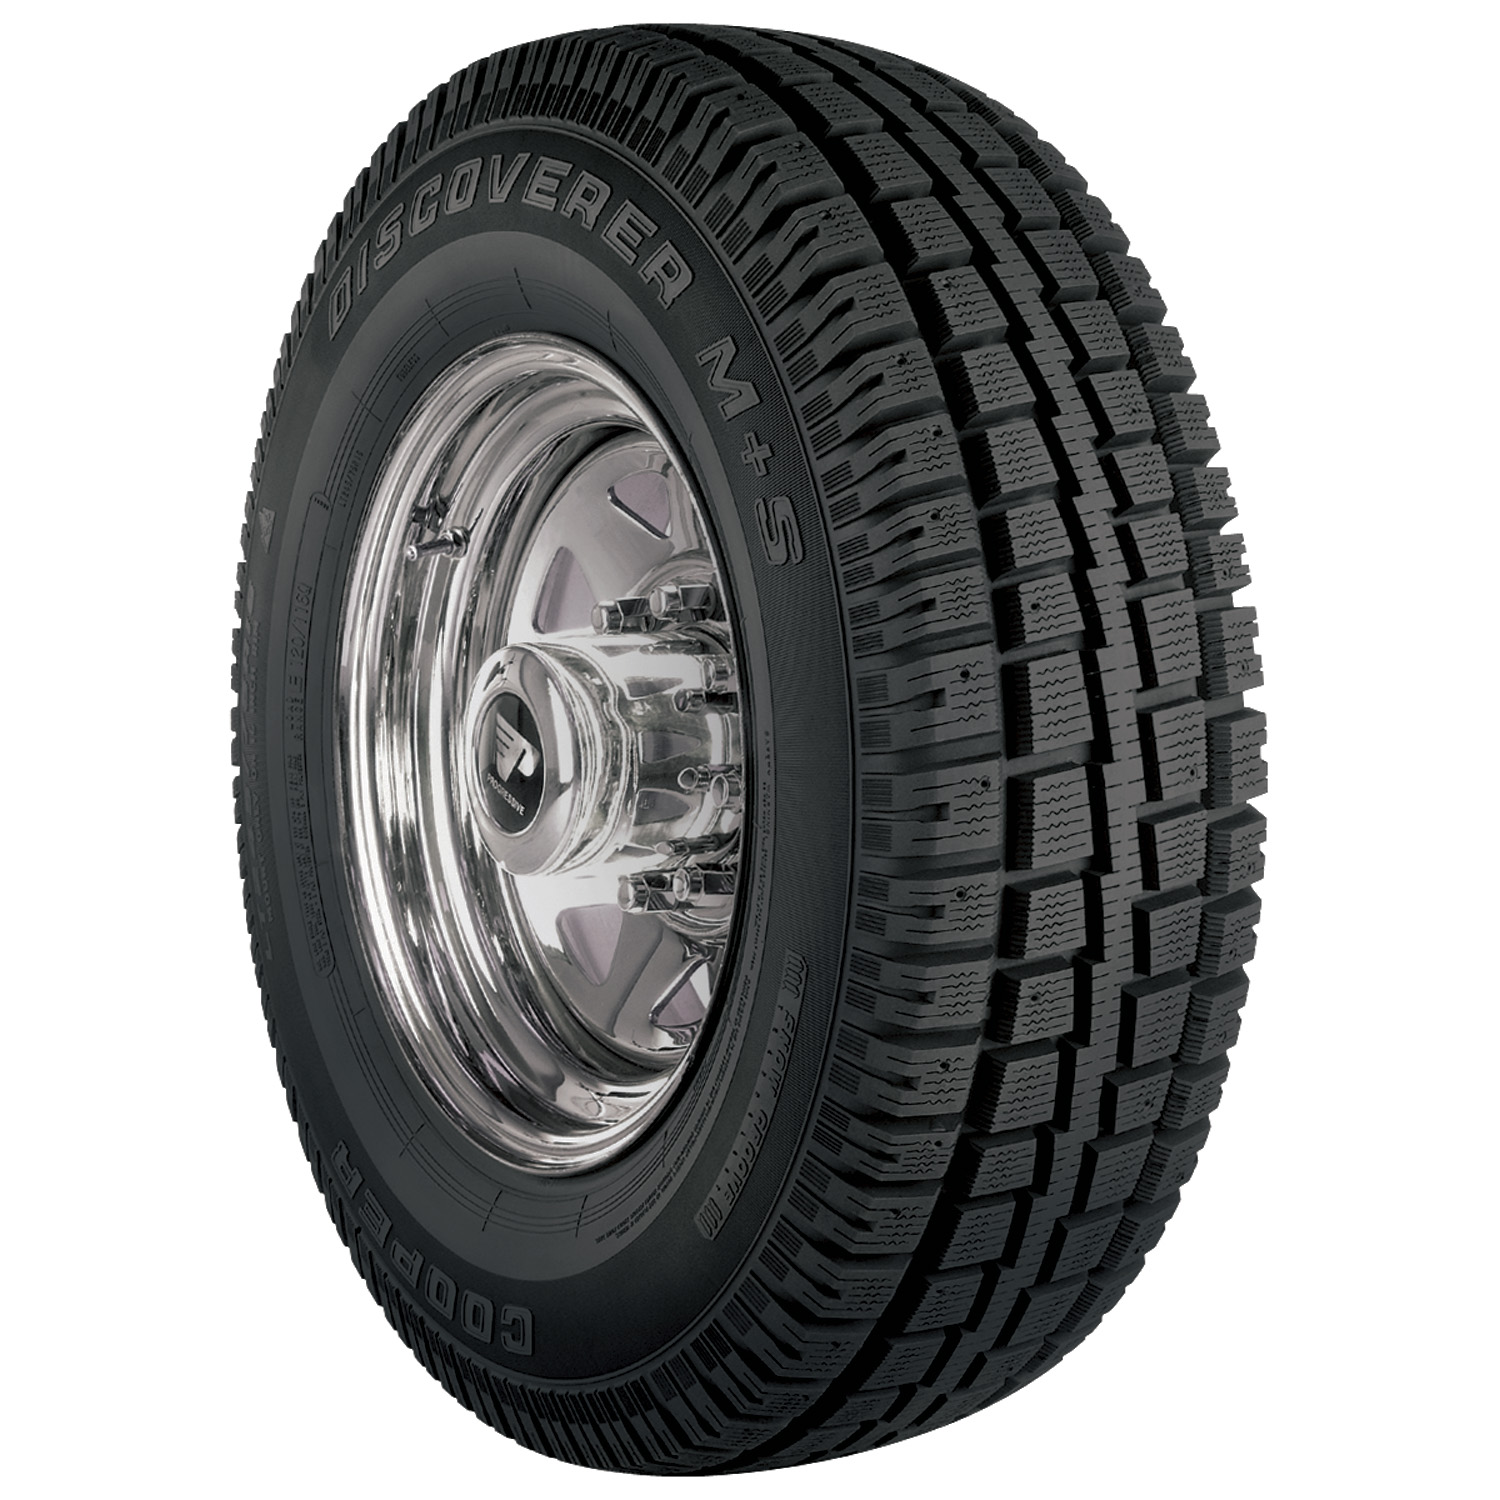 Cooper Discoverer M+S - 265/70R17 115S BW - Winter Tire 265-70-17